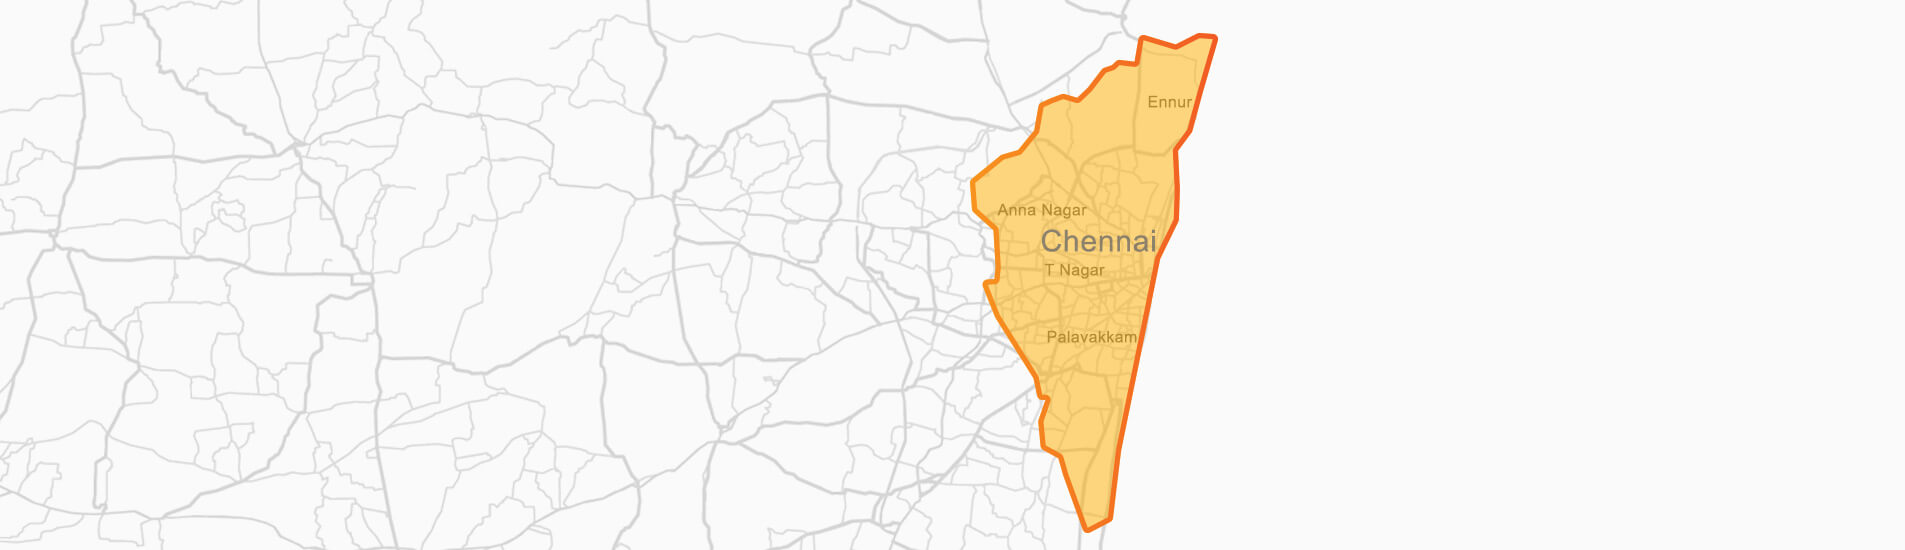 Chennai Location